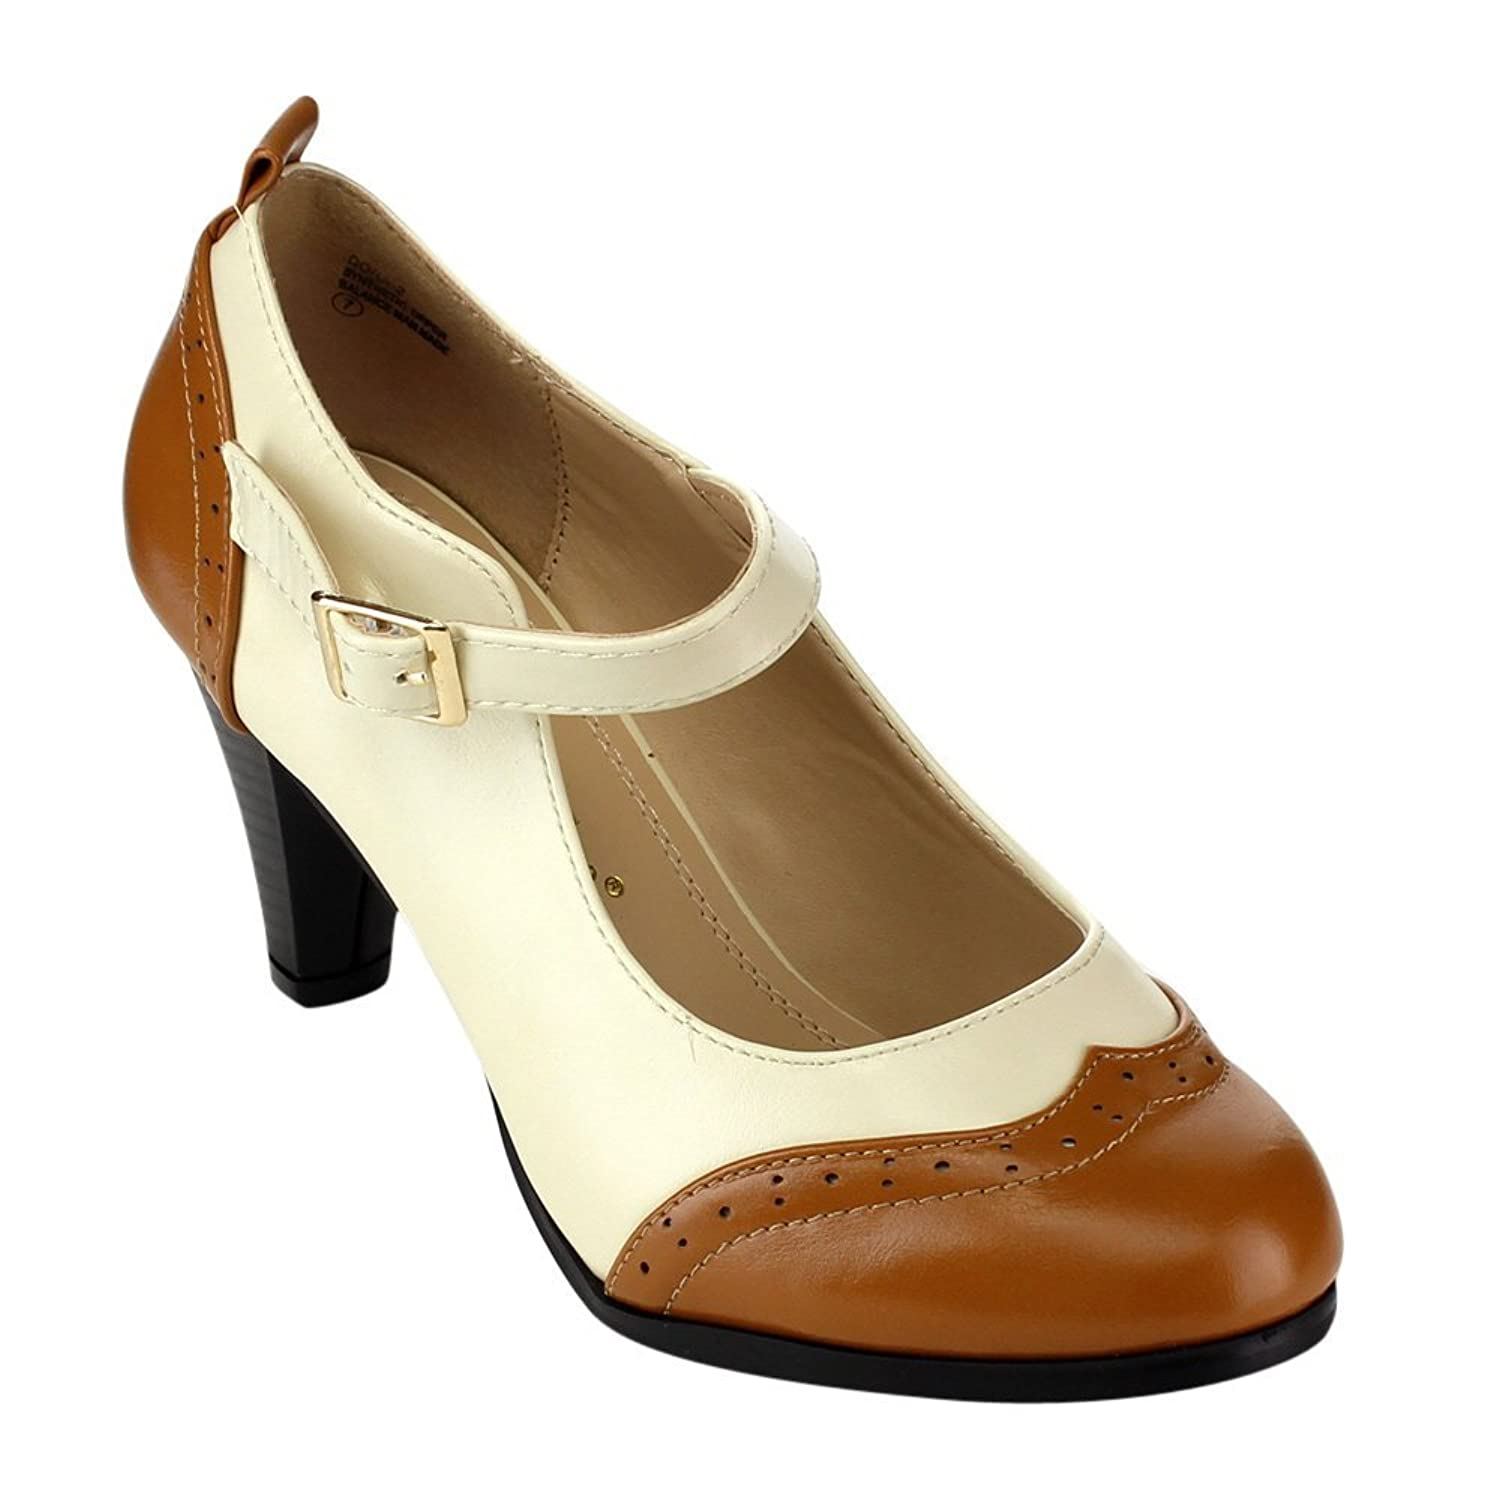 1920s Style Shoes Chase & Chloe Dora-2 Womens Round Toe Two Tone Mary Jane Pumps $32.99 AT vintagedancer.com